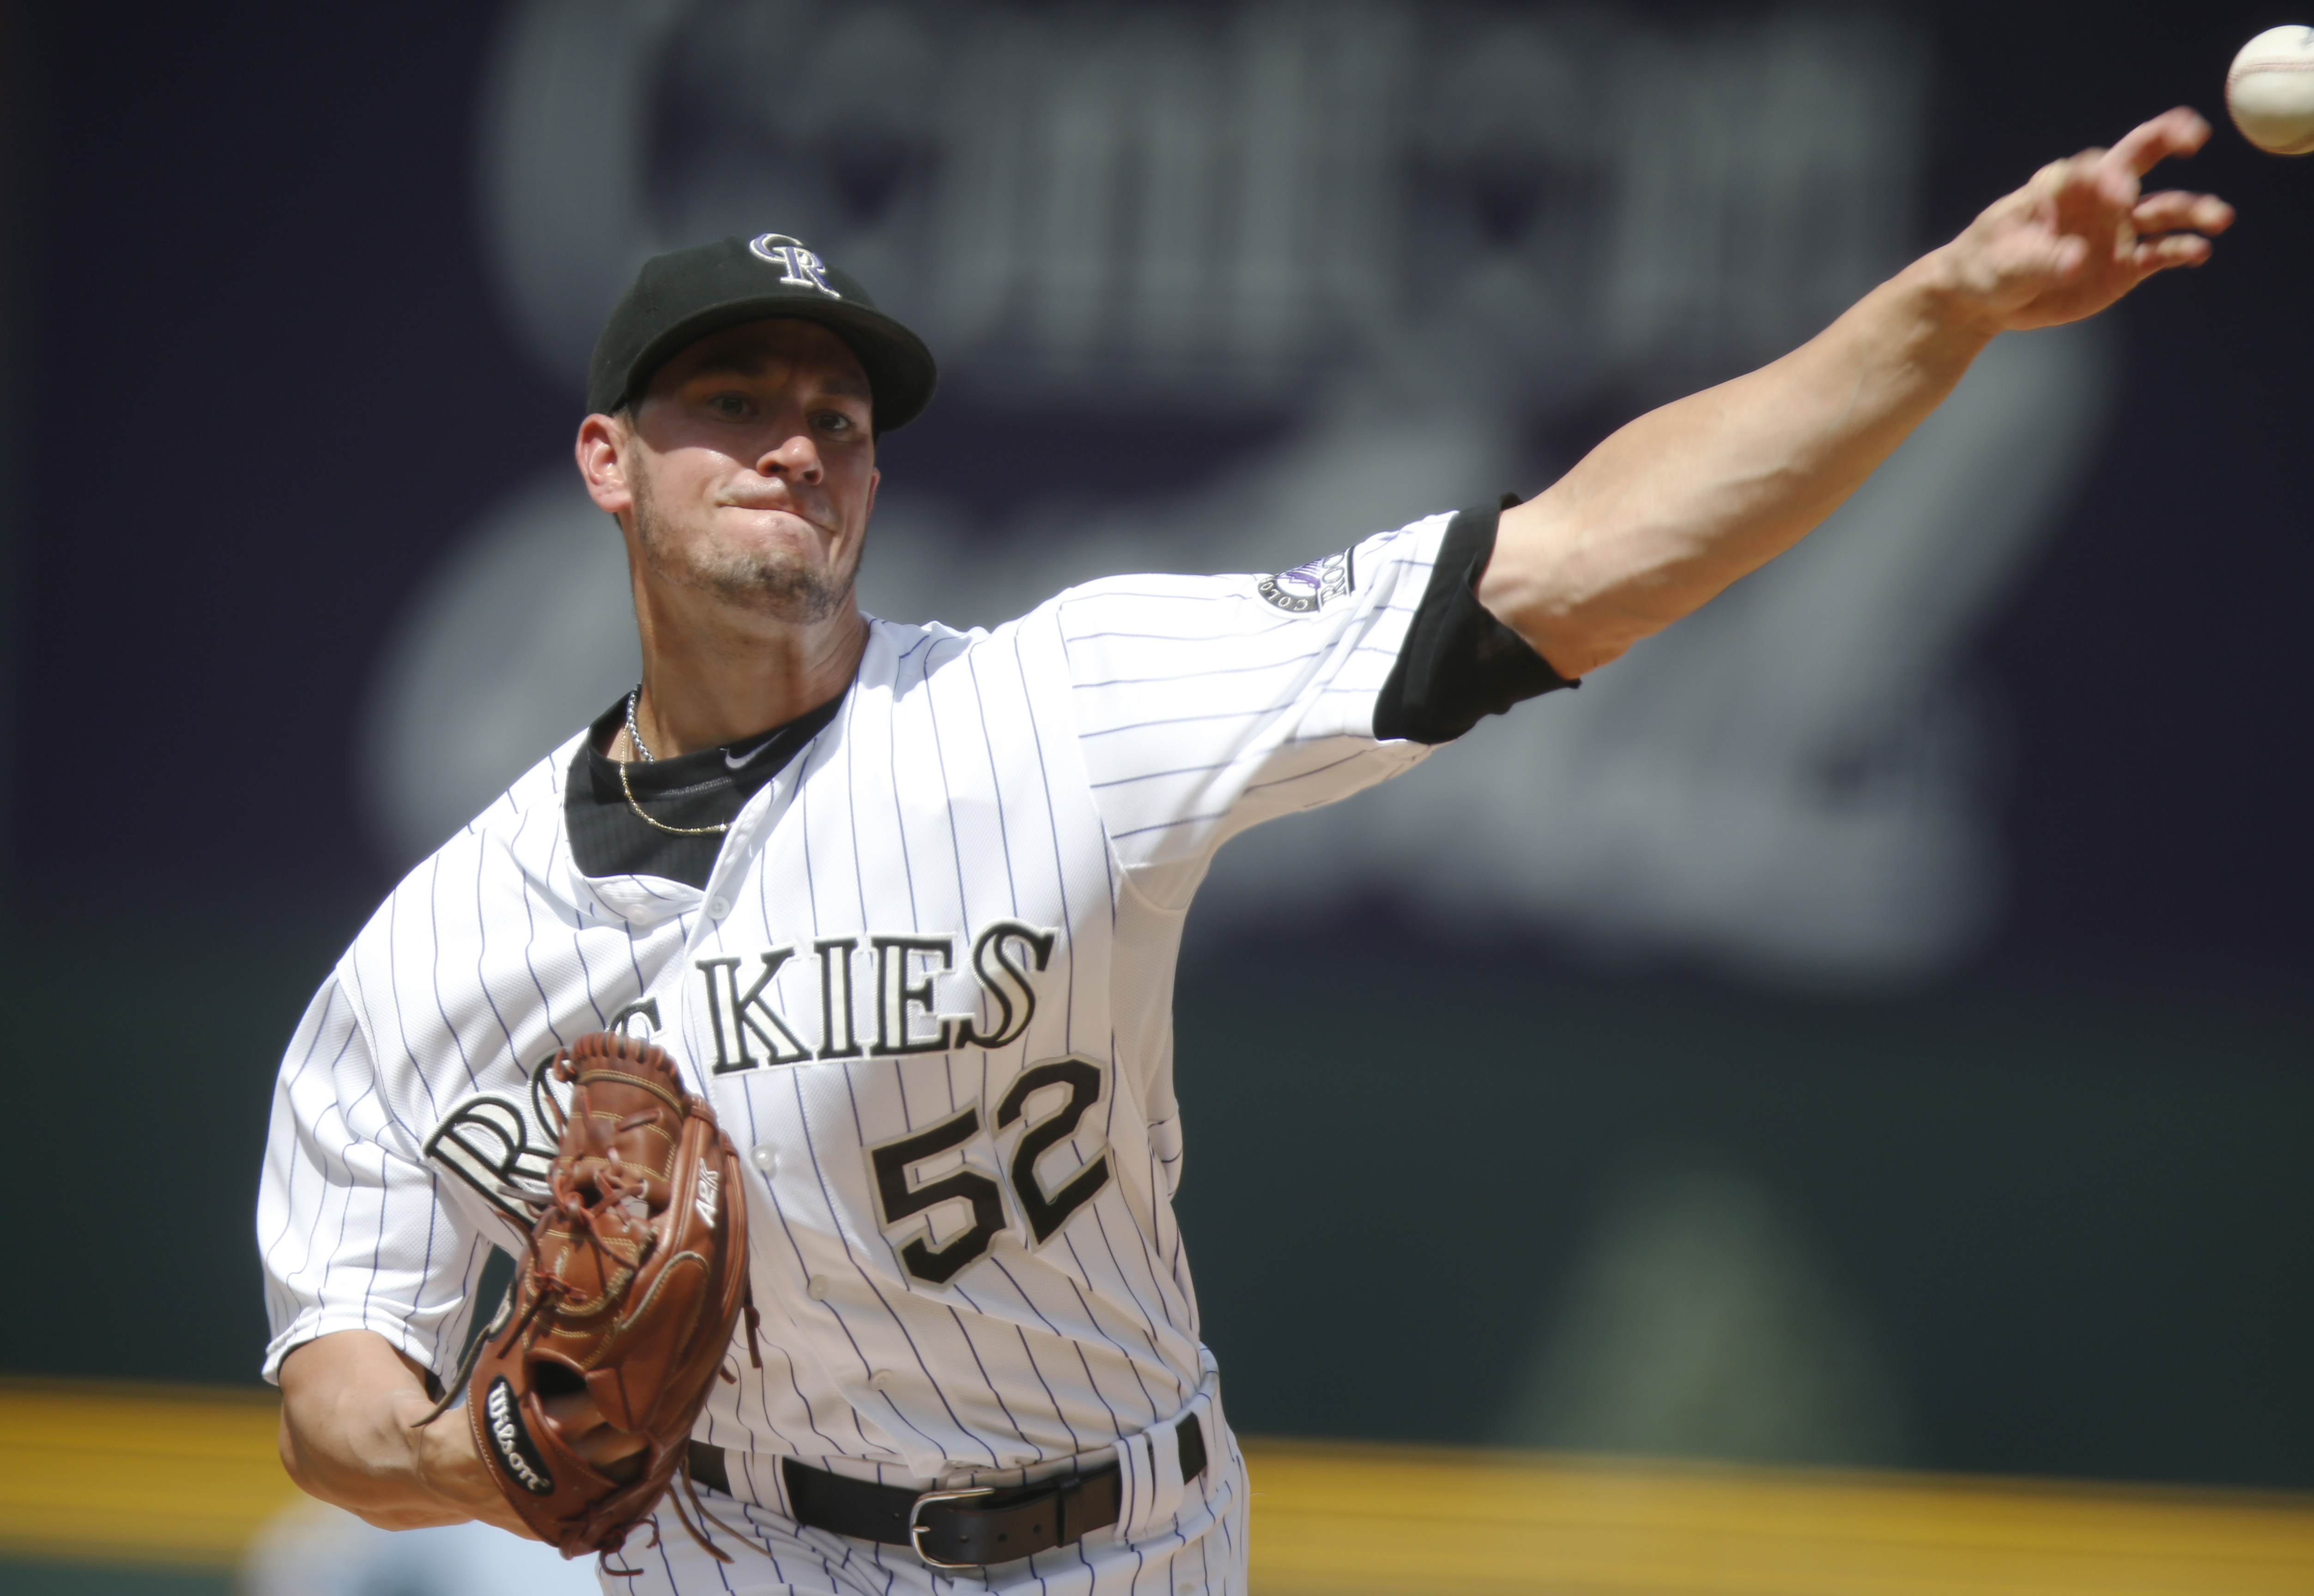 Colorado Rockies starting pitcher Chris Rusin works against the San Diego Padres in the first inning of a baseball game Sunday, Aug. 16, 2015, in Denver. (AP Photo/David Zalubowski)